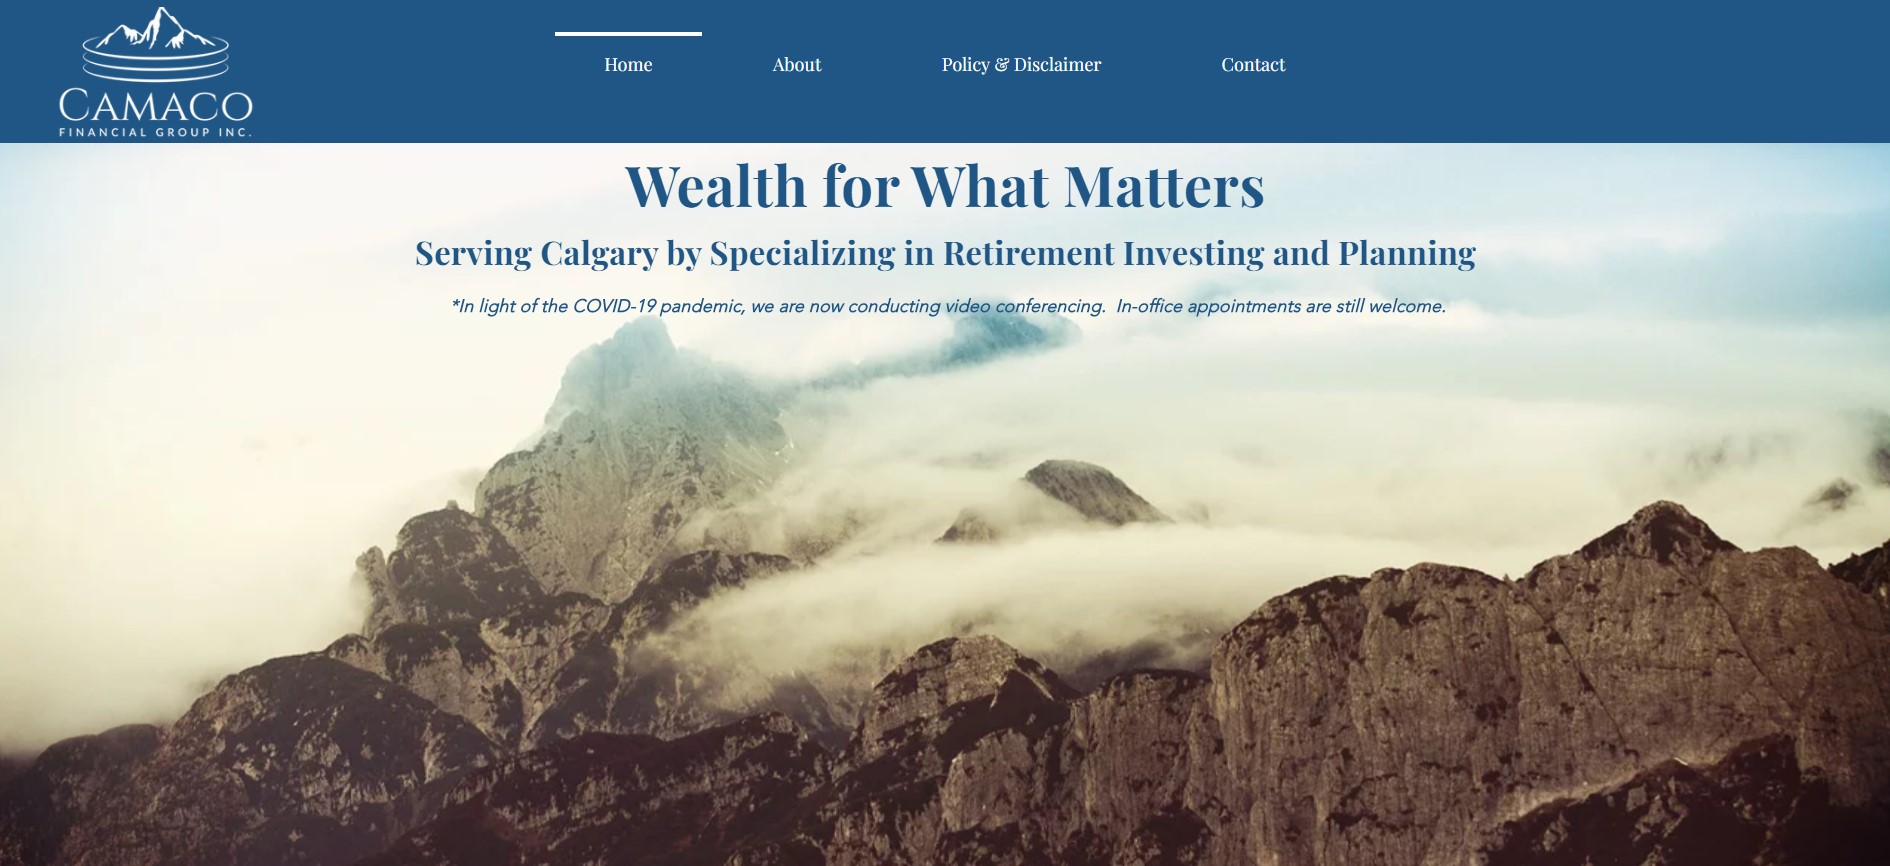 camaco financial service in calgary